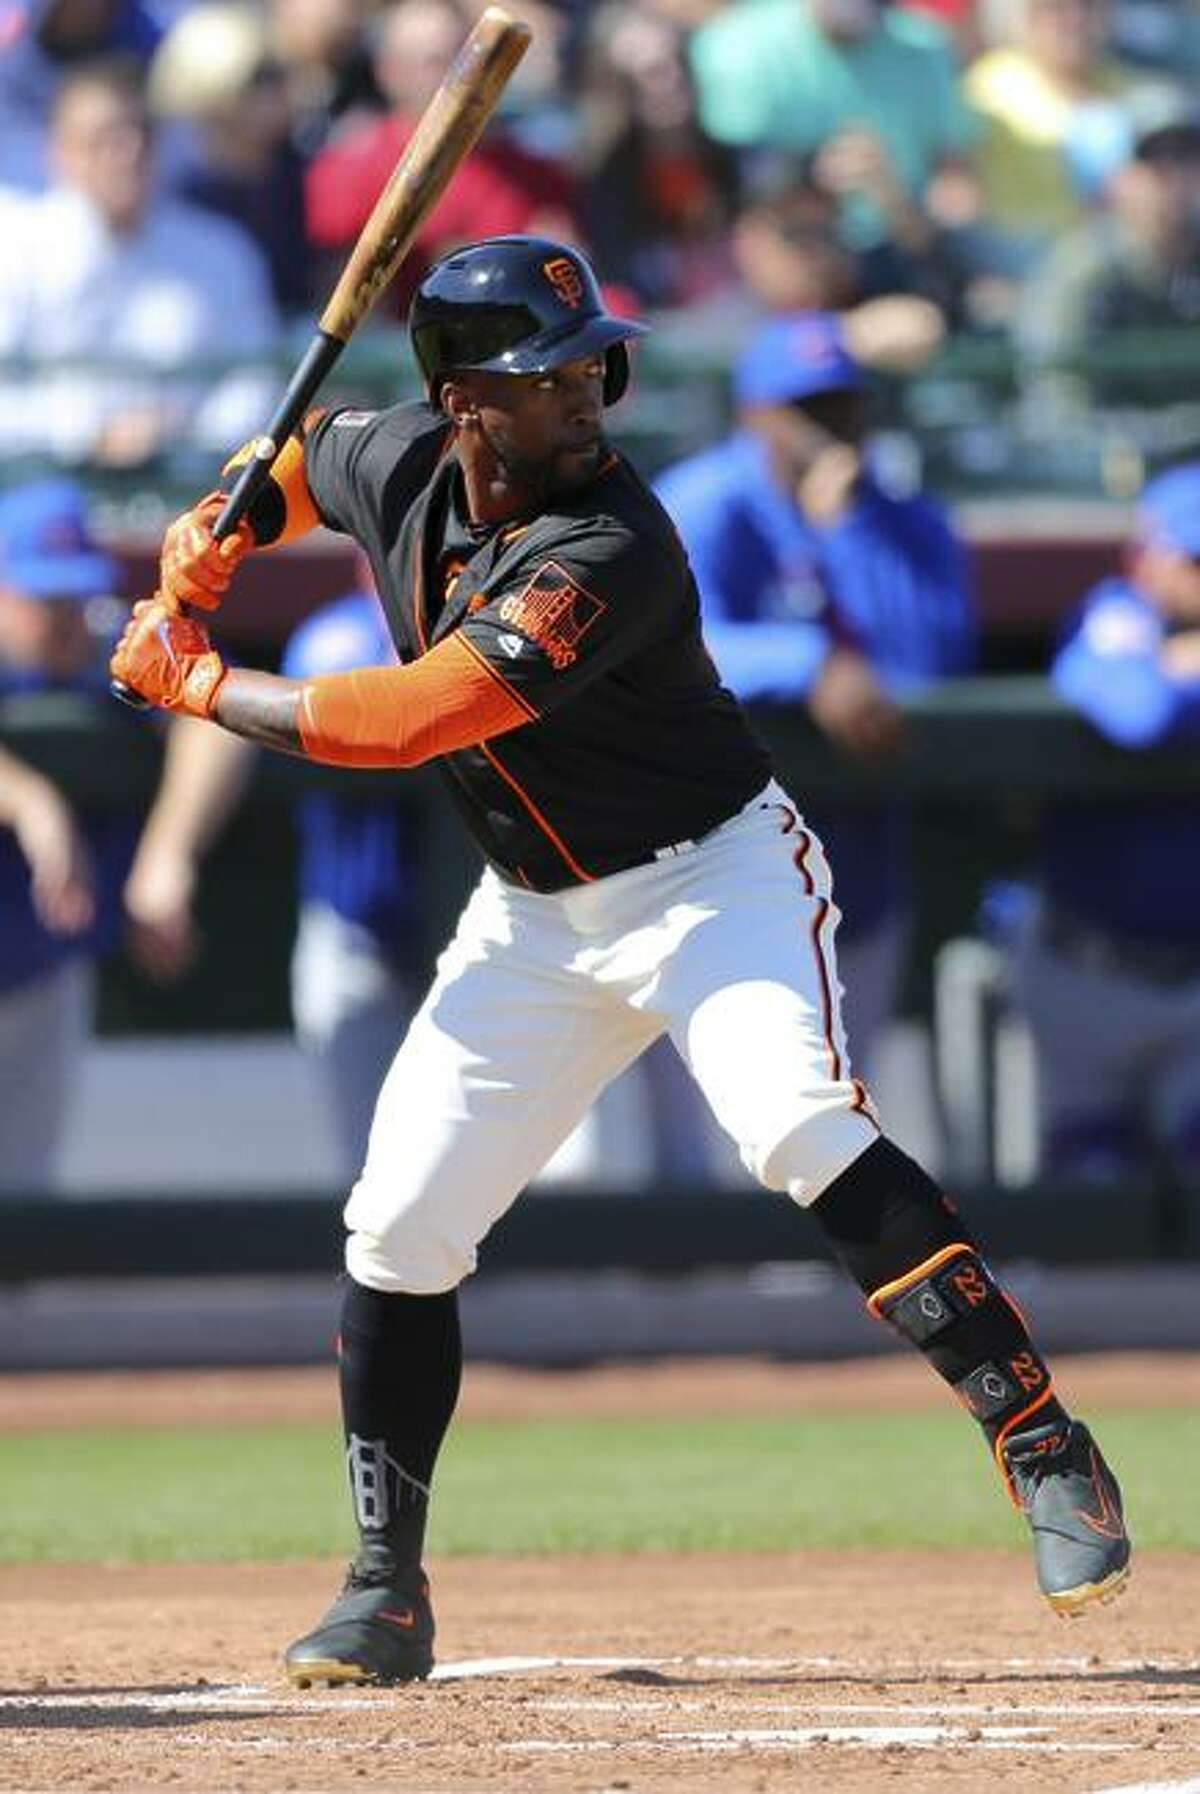 Andrew McCutchen #22 of the San Francisco Giants bats during a game against the Chicago Cubs on Sunday, February 25, 2018 at Scottsdale Stadium in Scottsdale, Arizona.